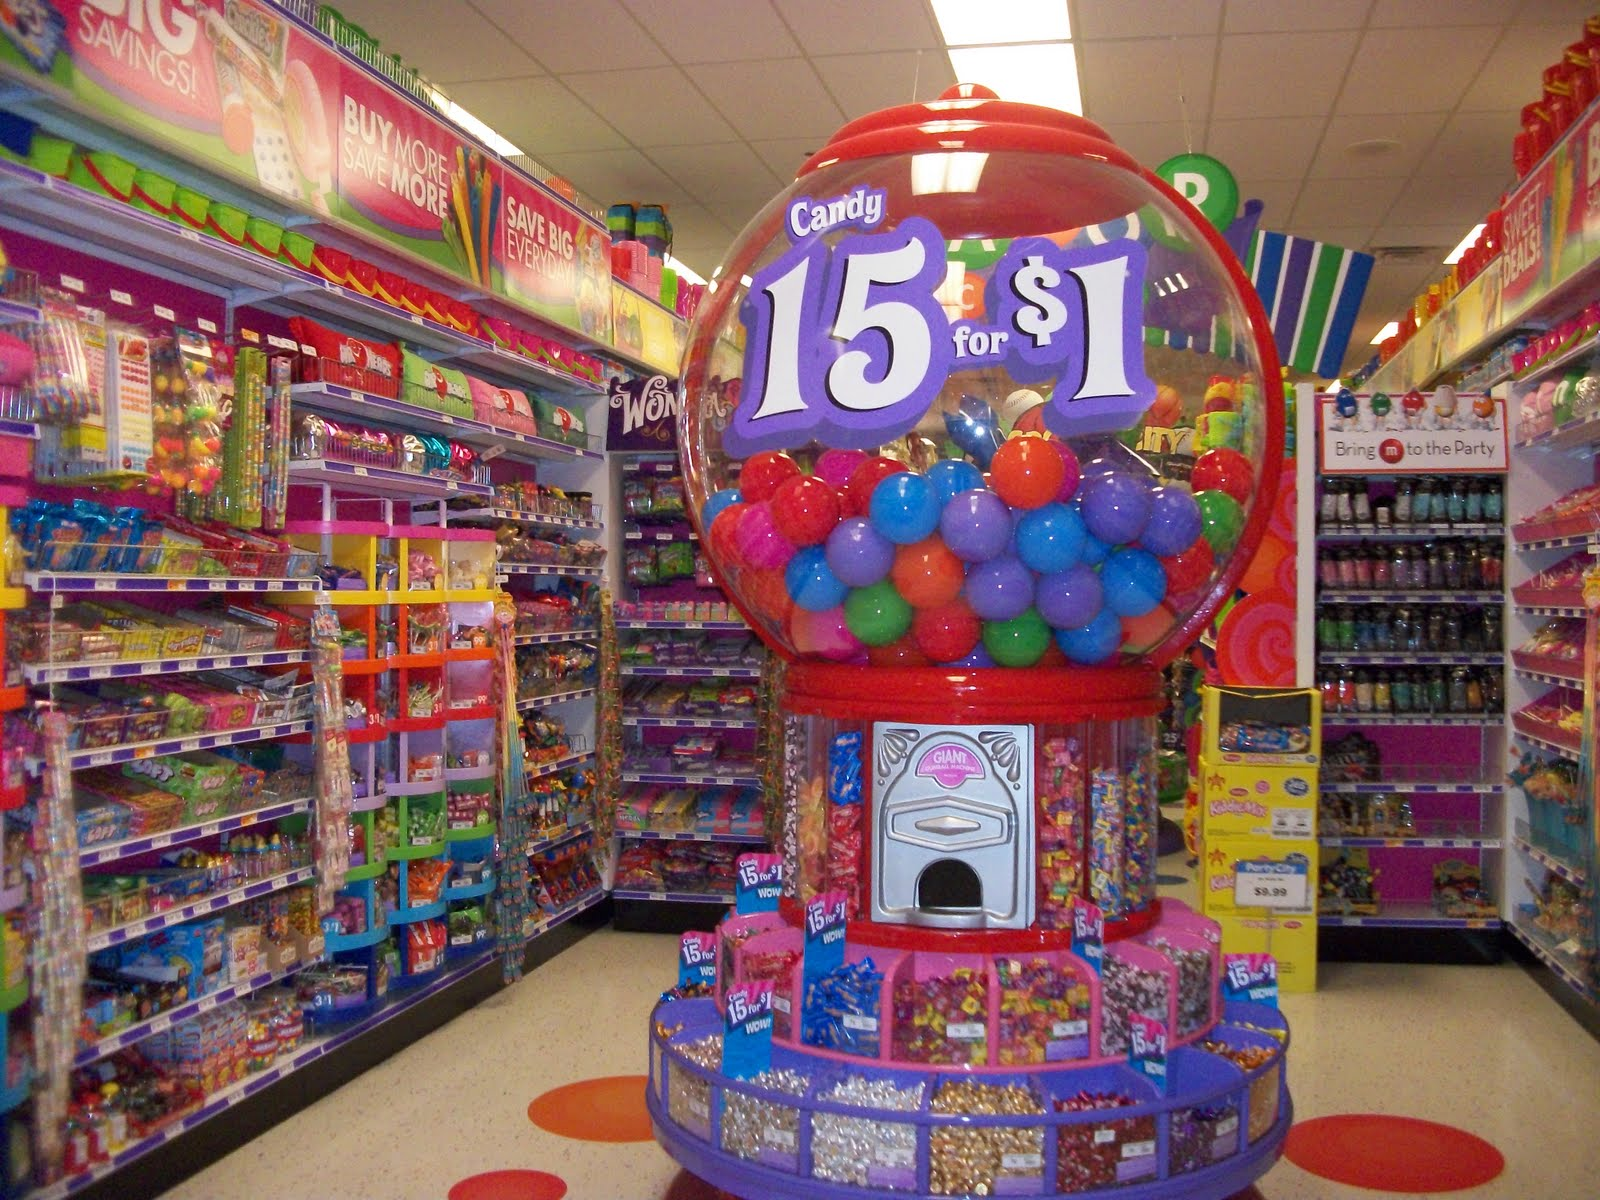 Party clubing candy city great of course for halloween birthday goodie bags pinata filler easter baskets and much more check out this view of of candy city negle Image collections